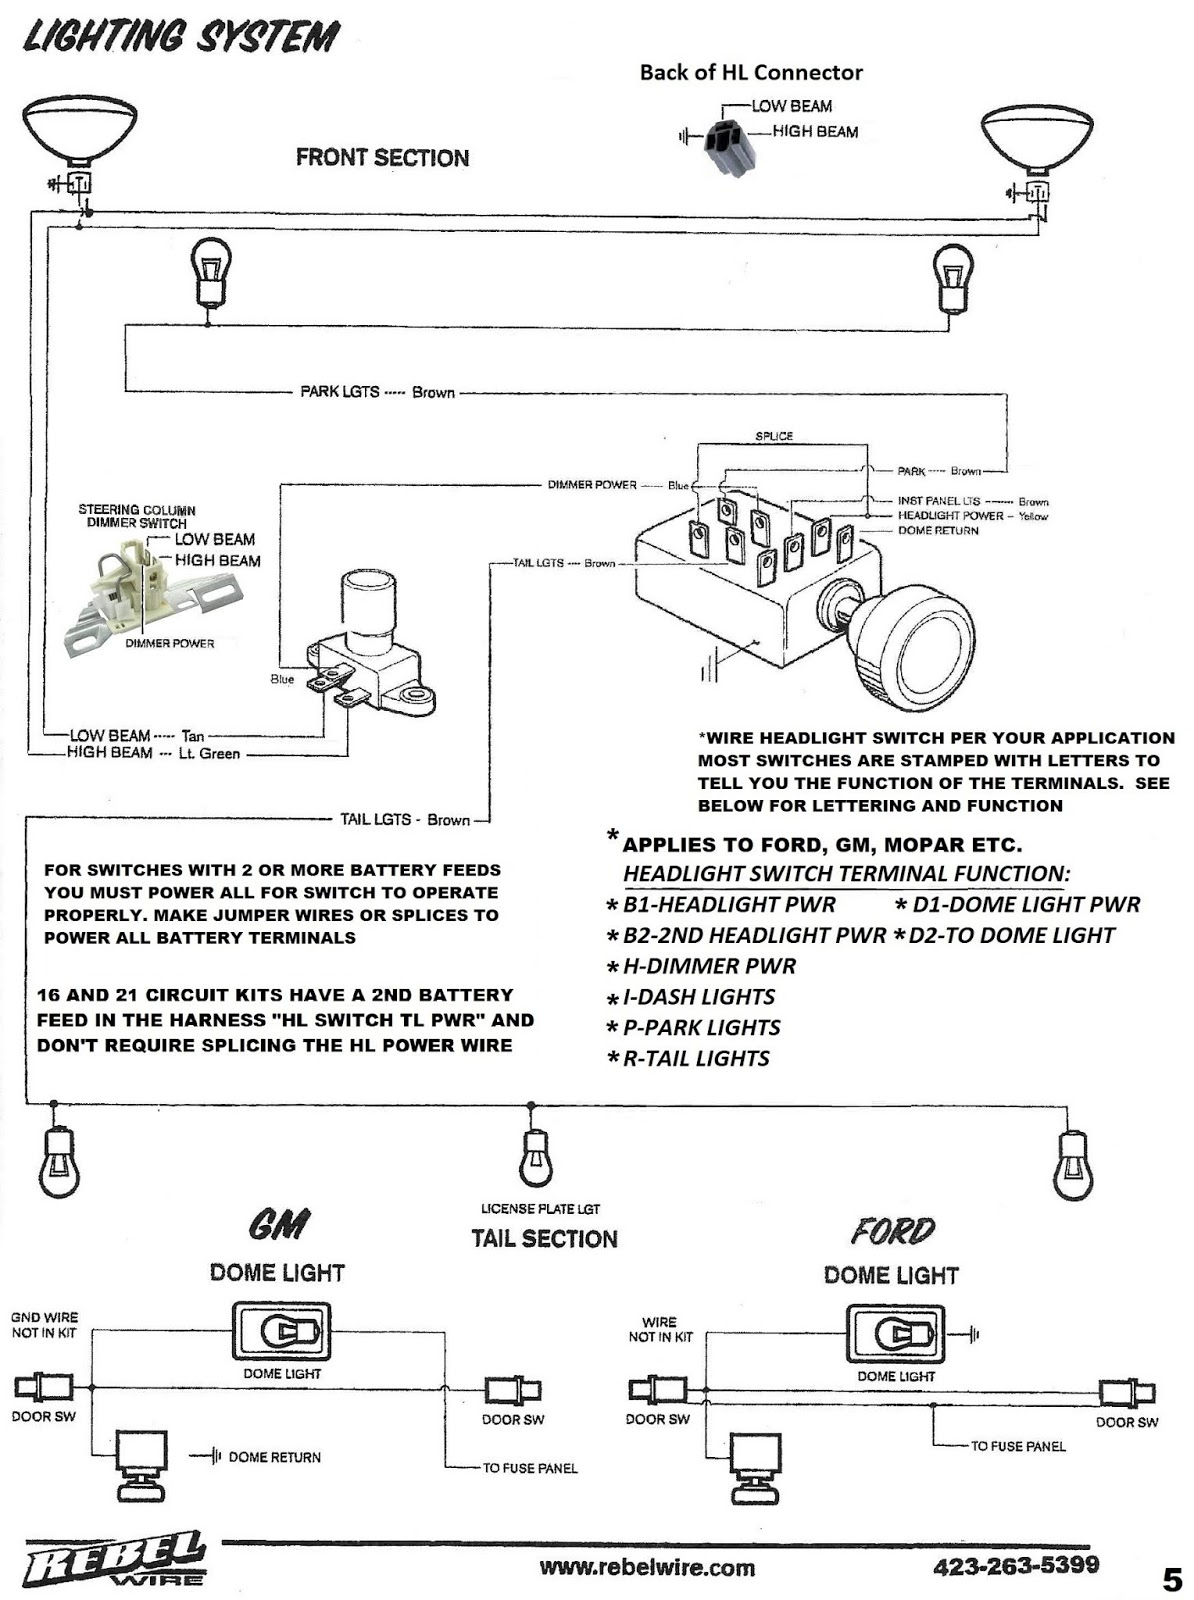 1985 Chevy Truck Headlight Switch Wiring Diagram from www.cabtivist.com